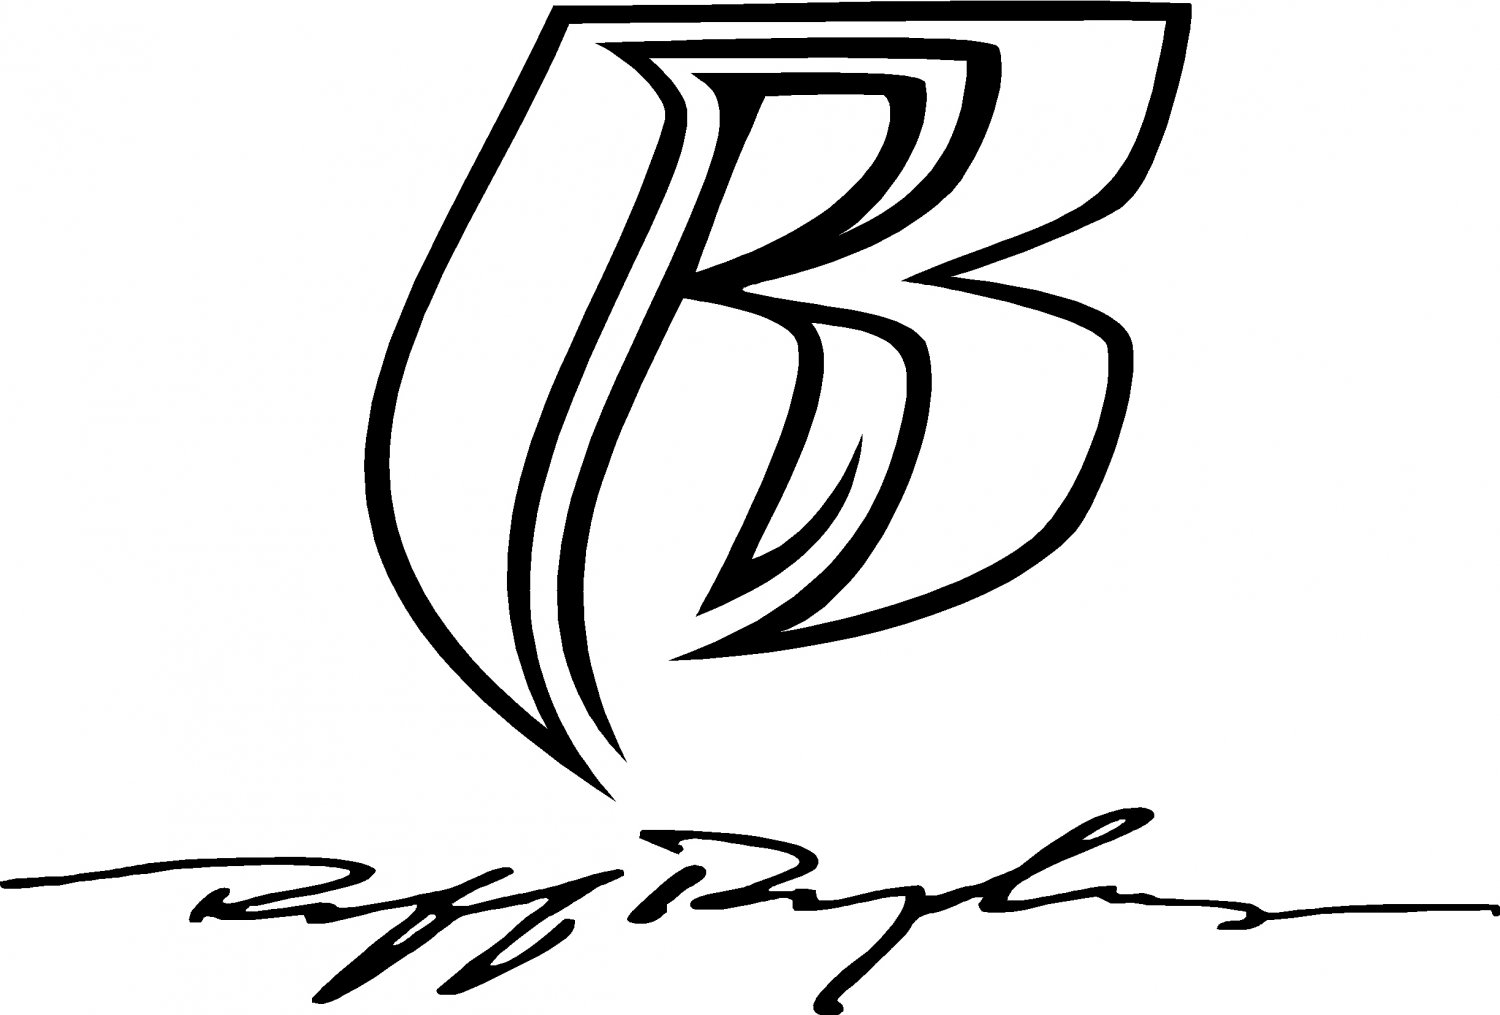 ruff ryders R and signature  vinyl decal sticker set